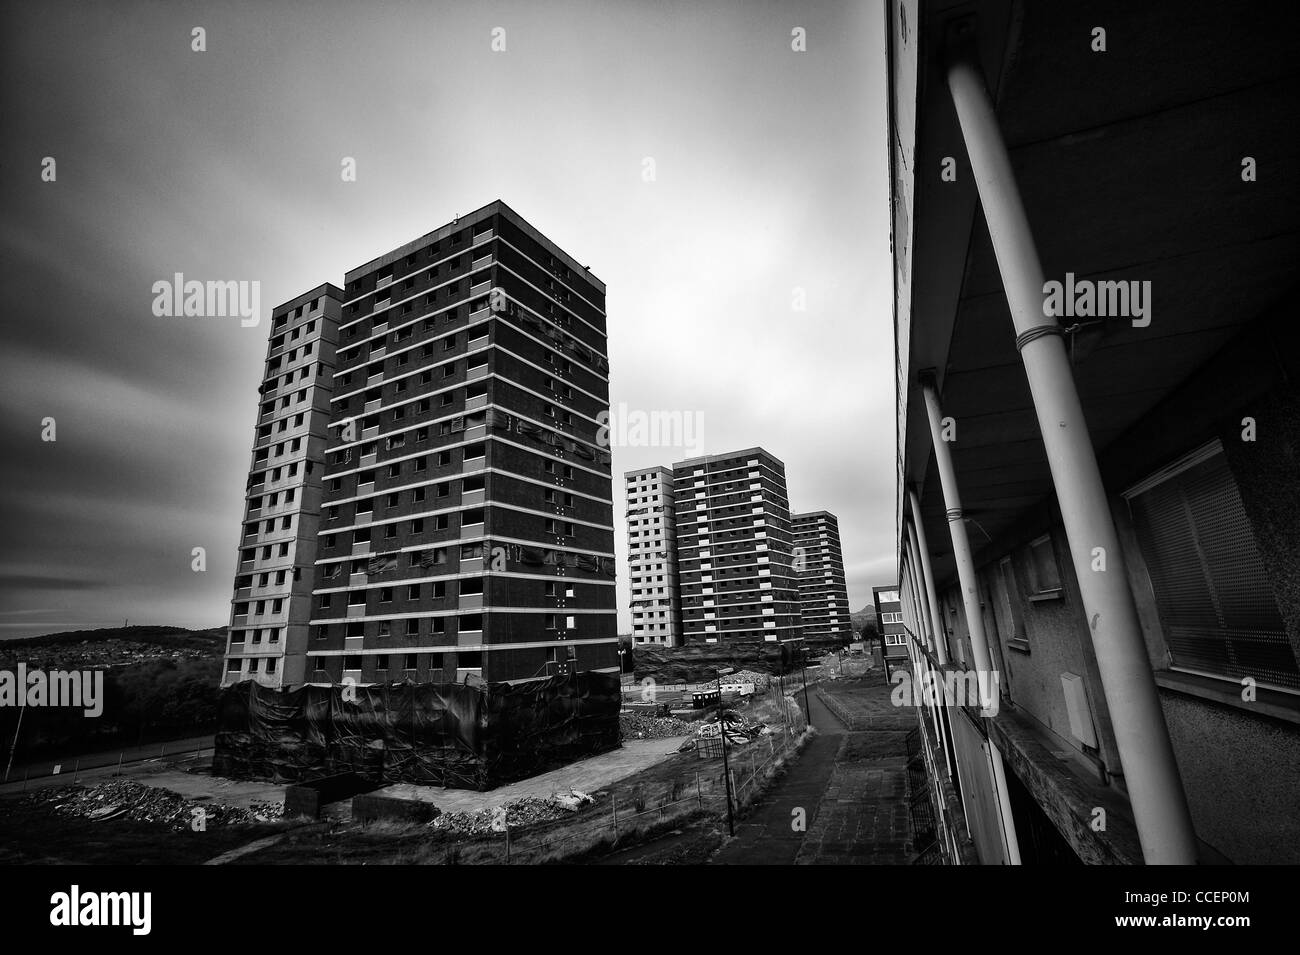 High rises in the Edinburgh suburb of Sighthill is underway - Stock Image